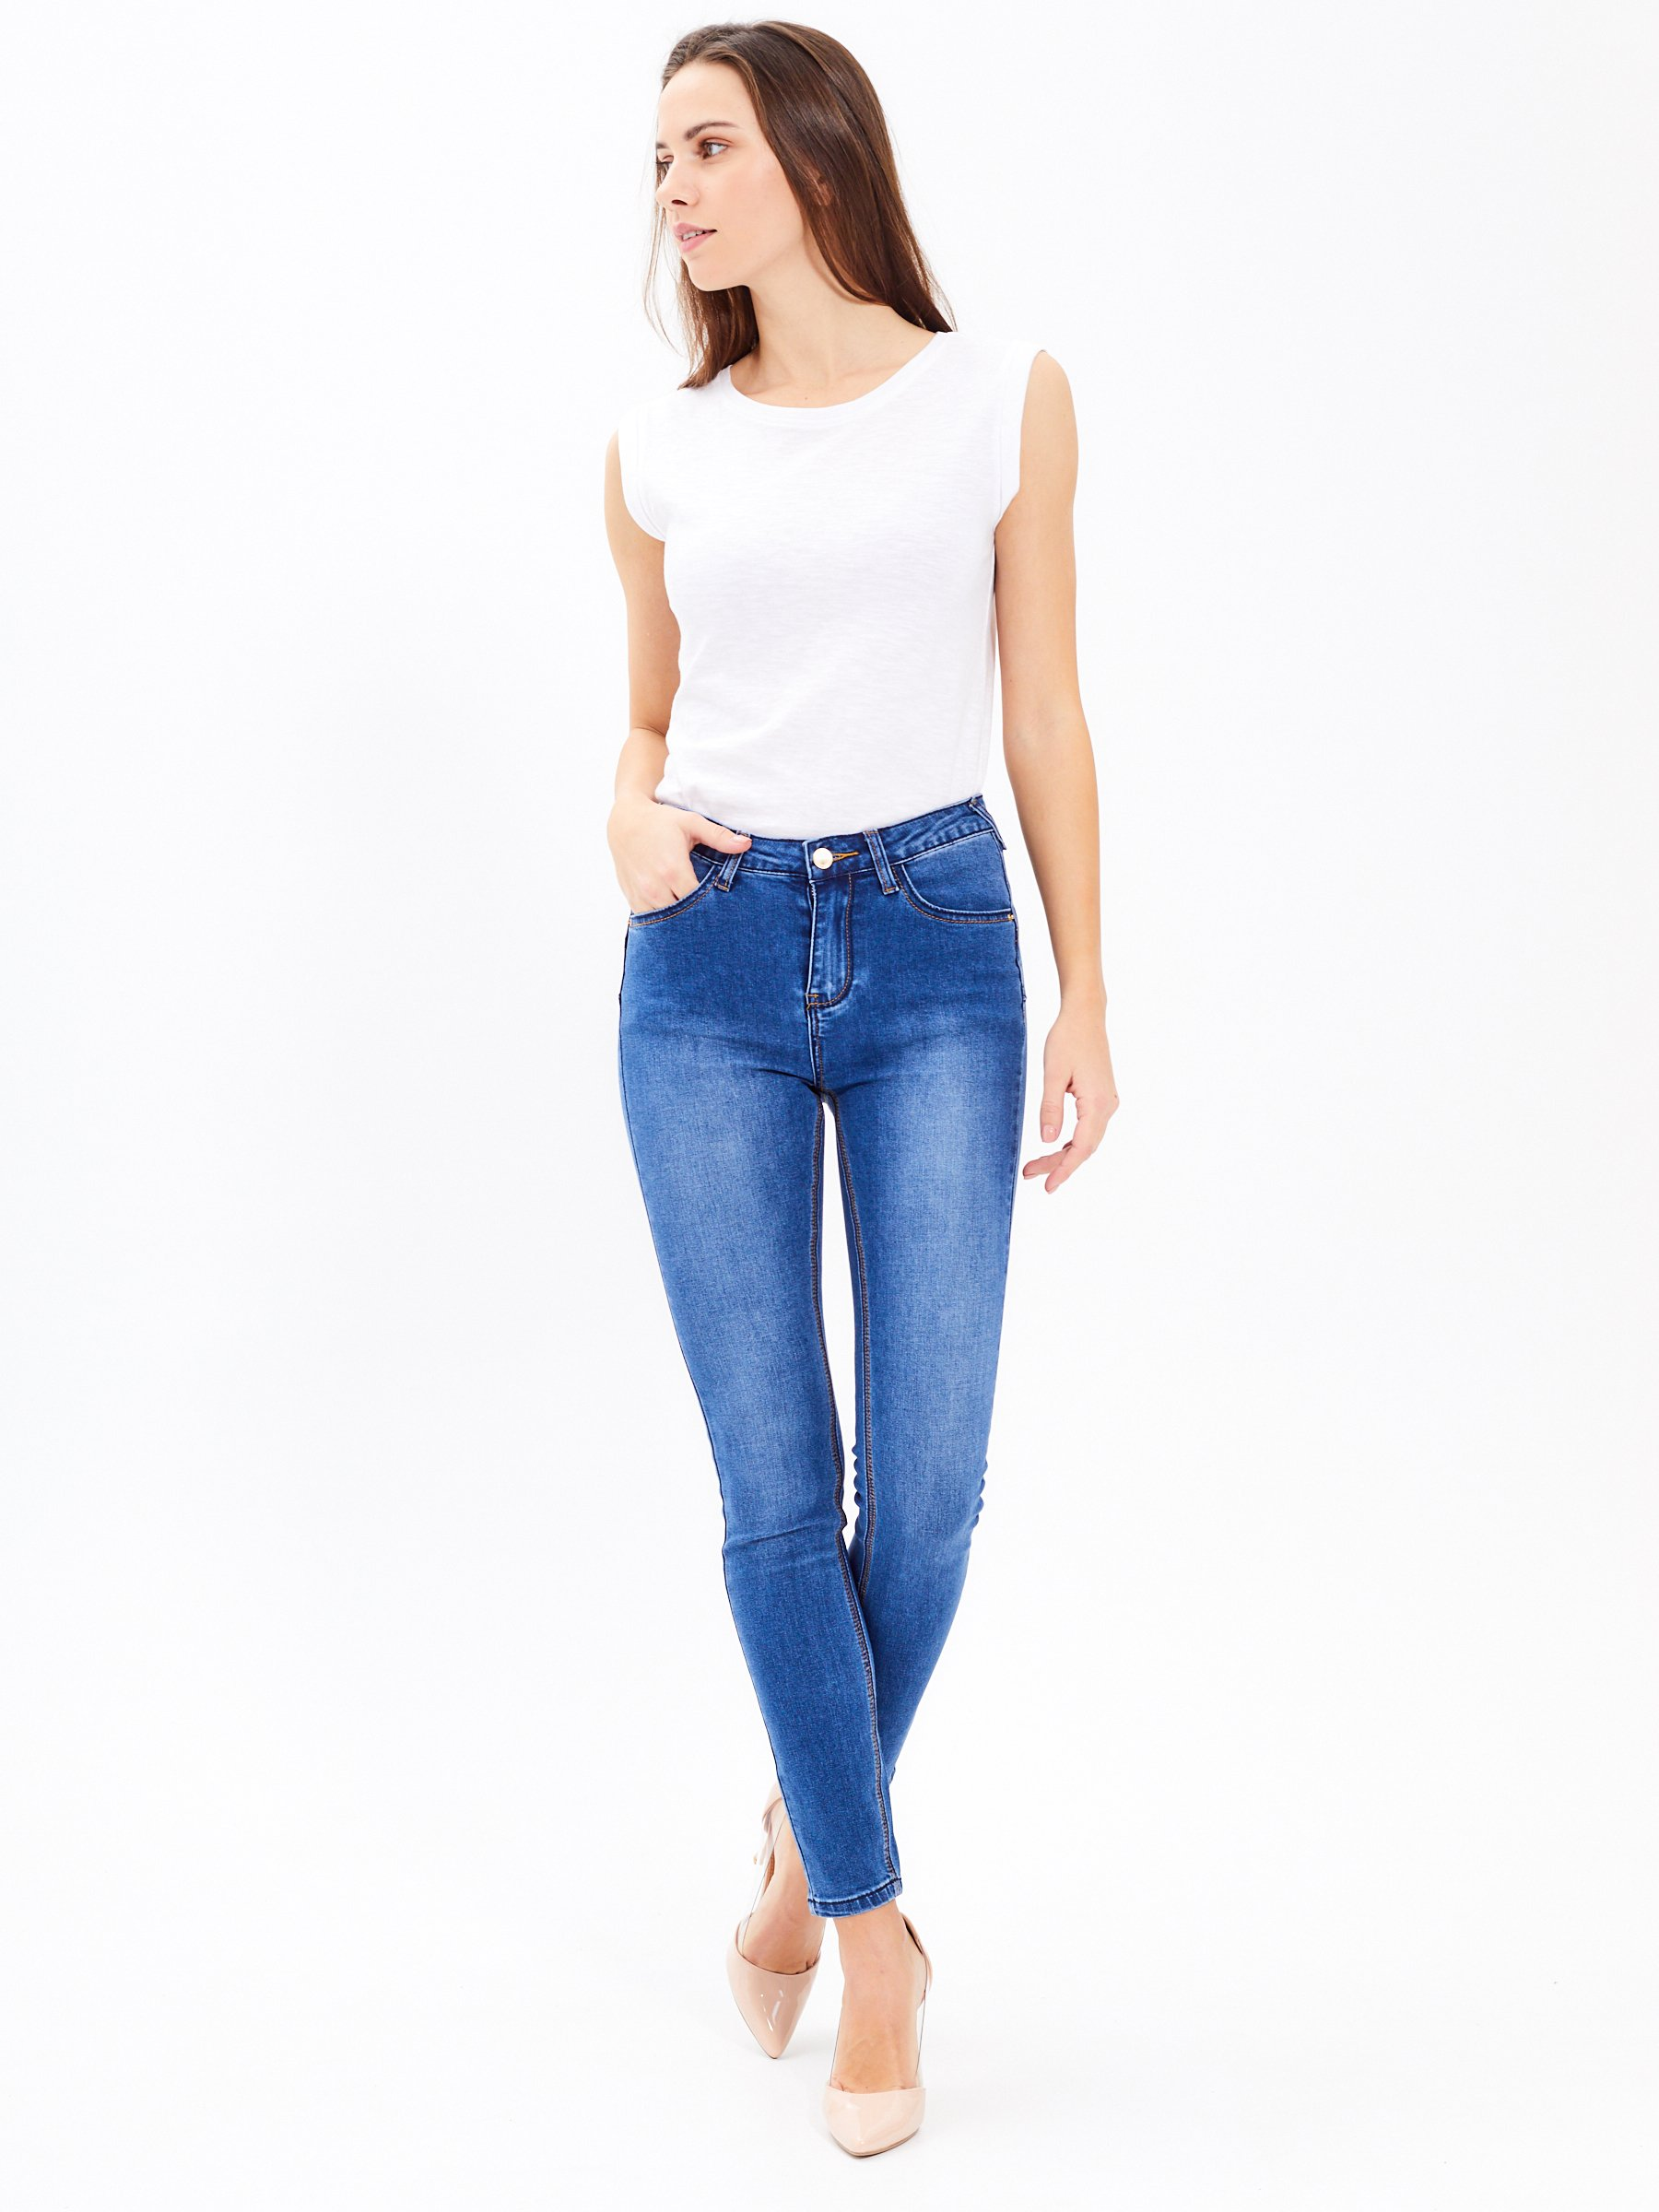 54d0a29314 Skinny push-up jeans